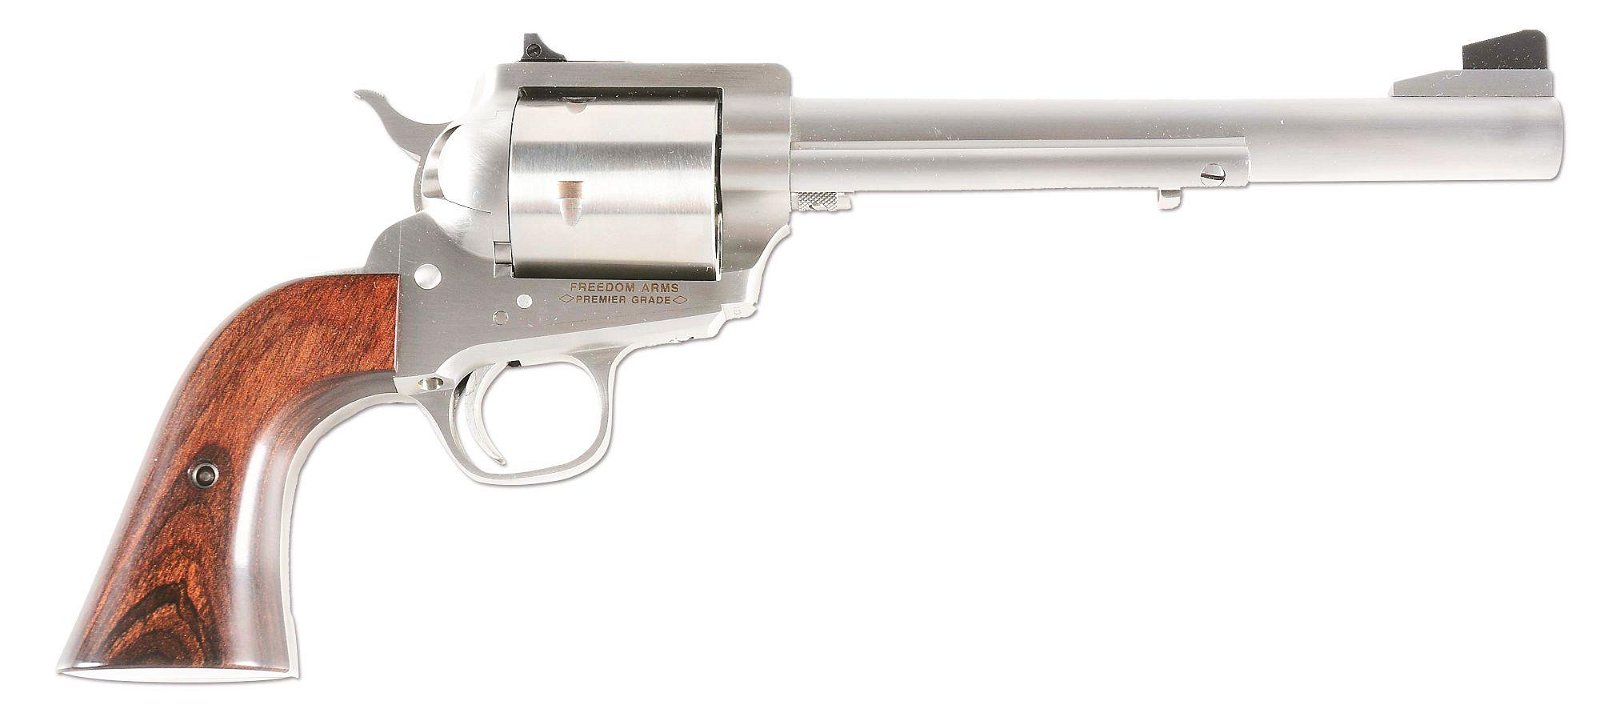 (M) FREEDOM ARMS MODEL 555 PREMIER GRADE SINGLE ACTION